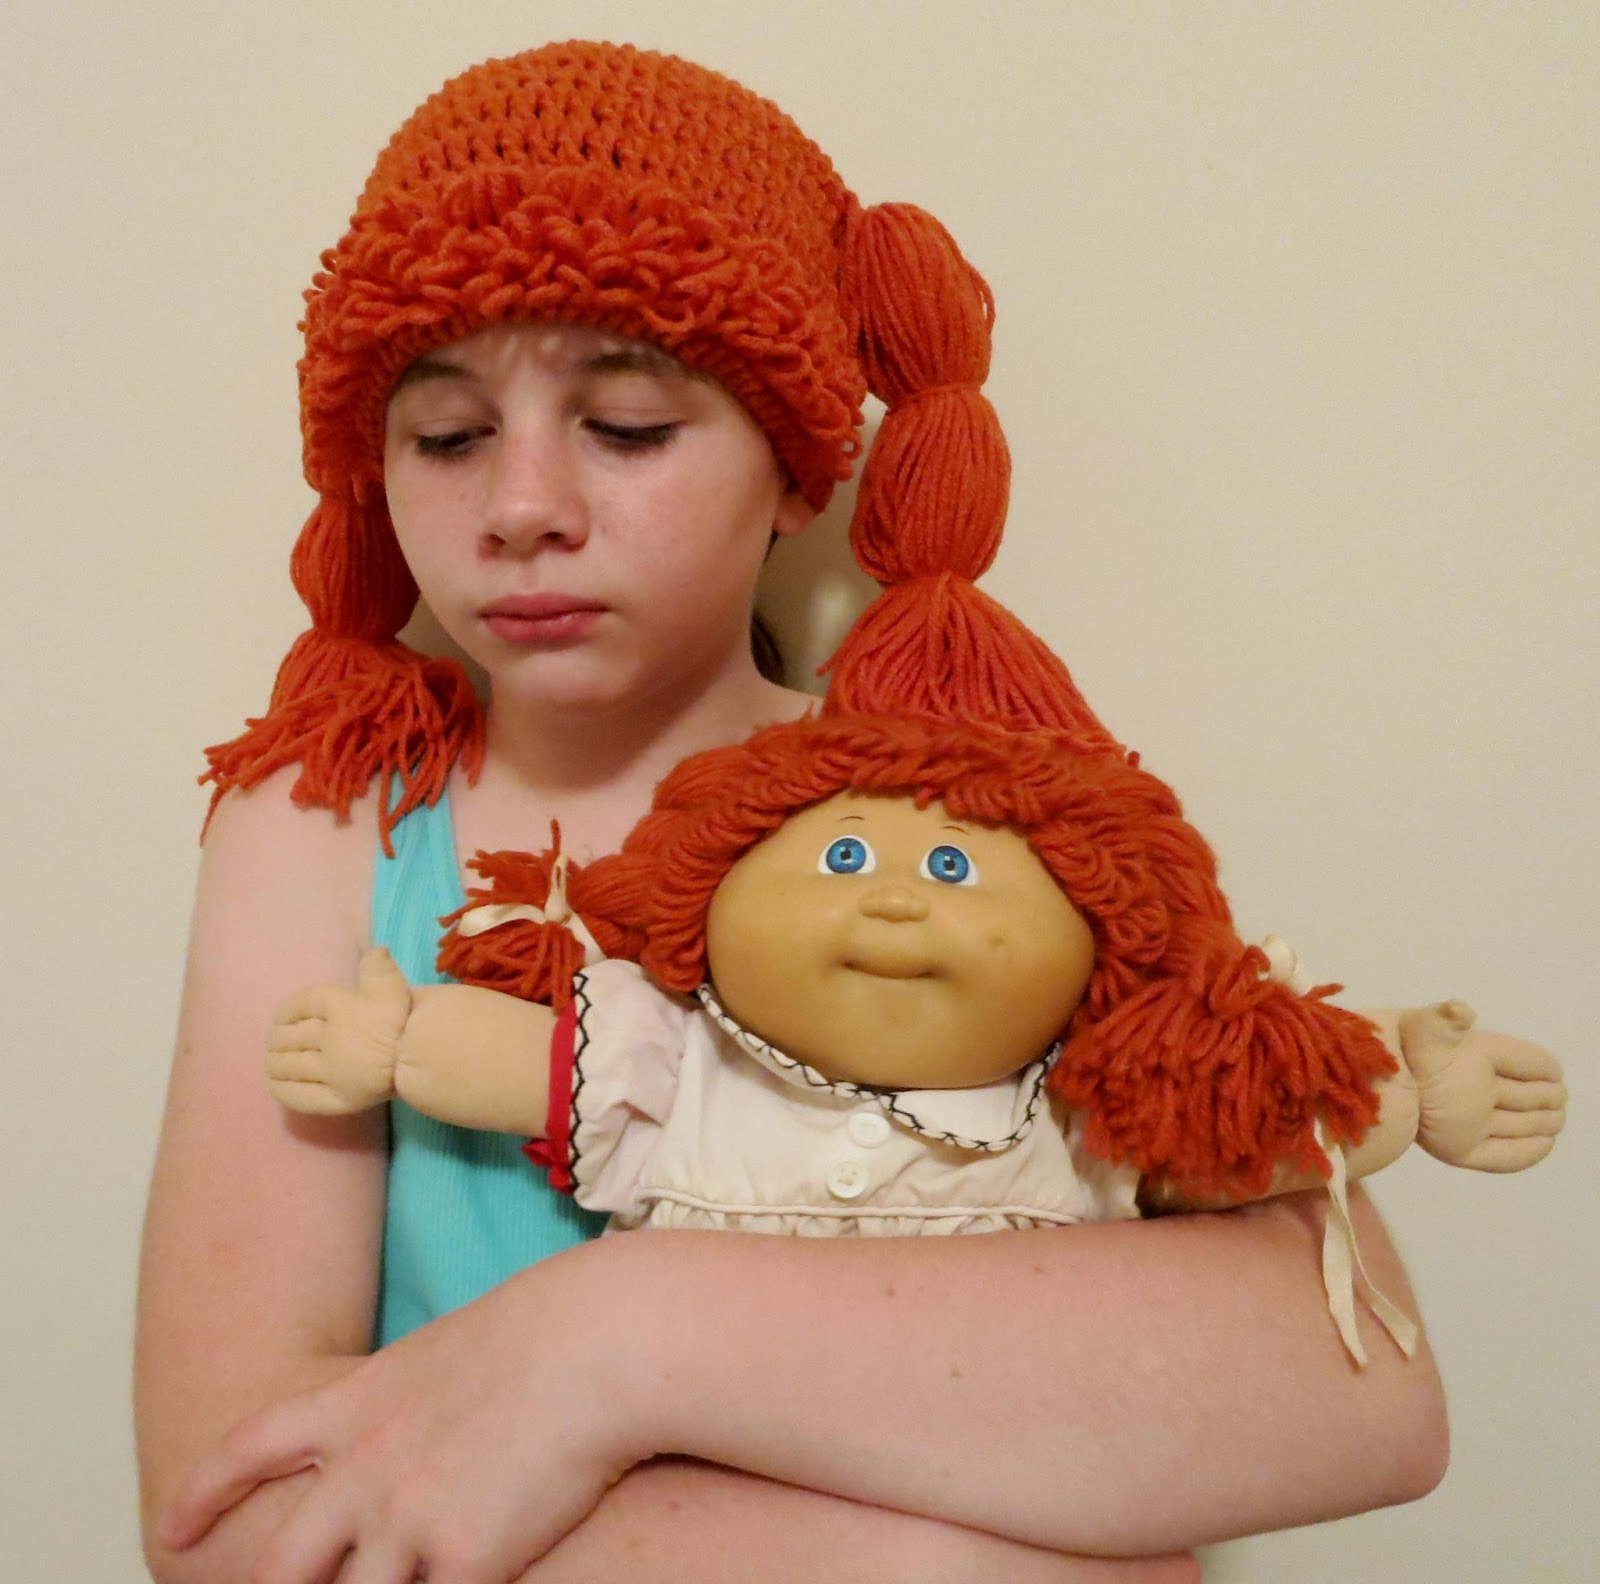 The Cabbage Patch Kids inspired crochet hat